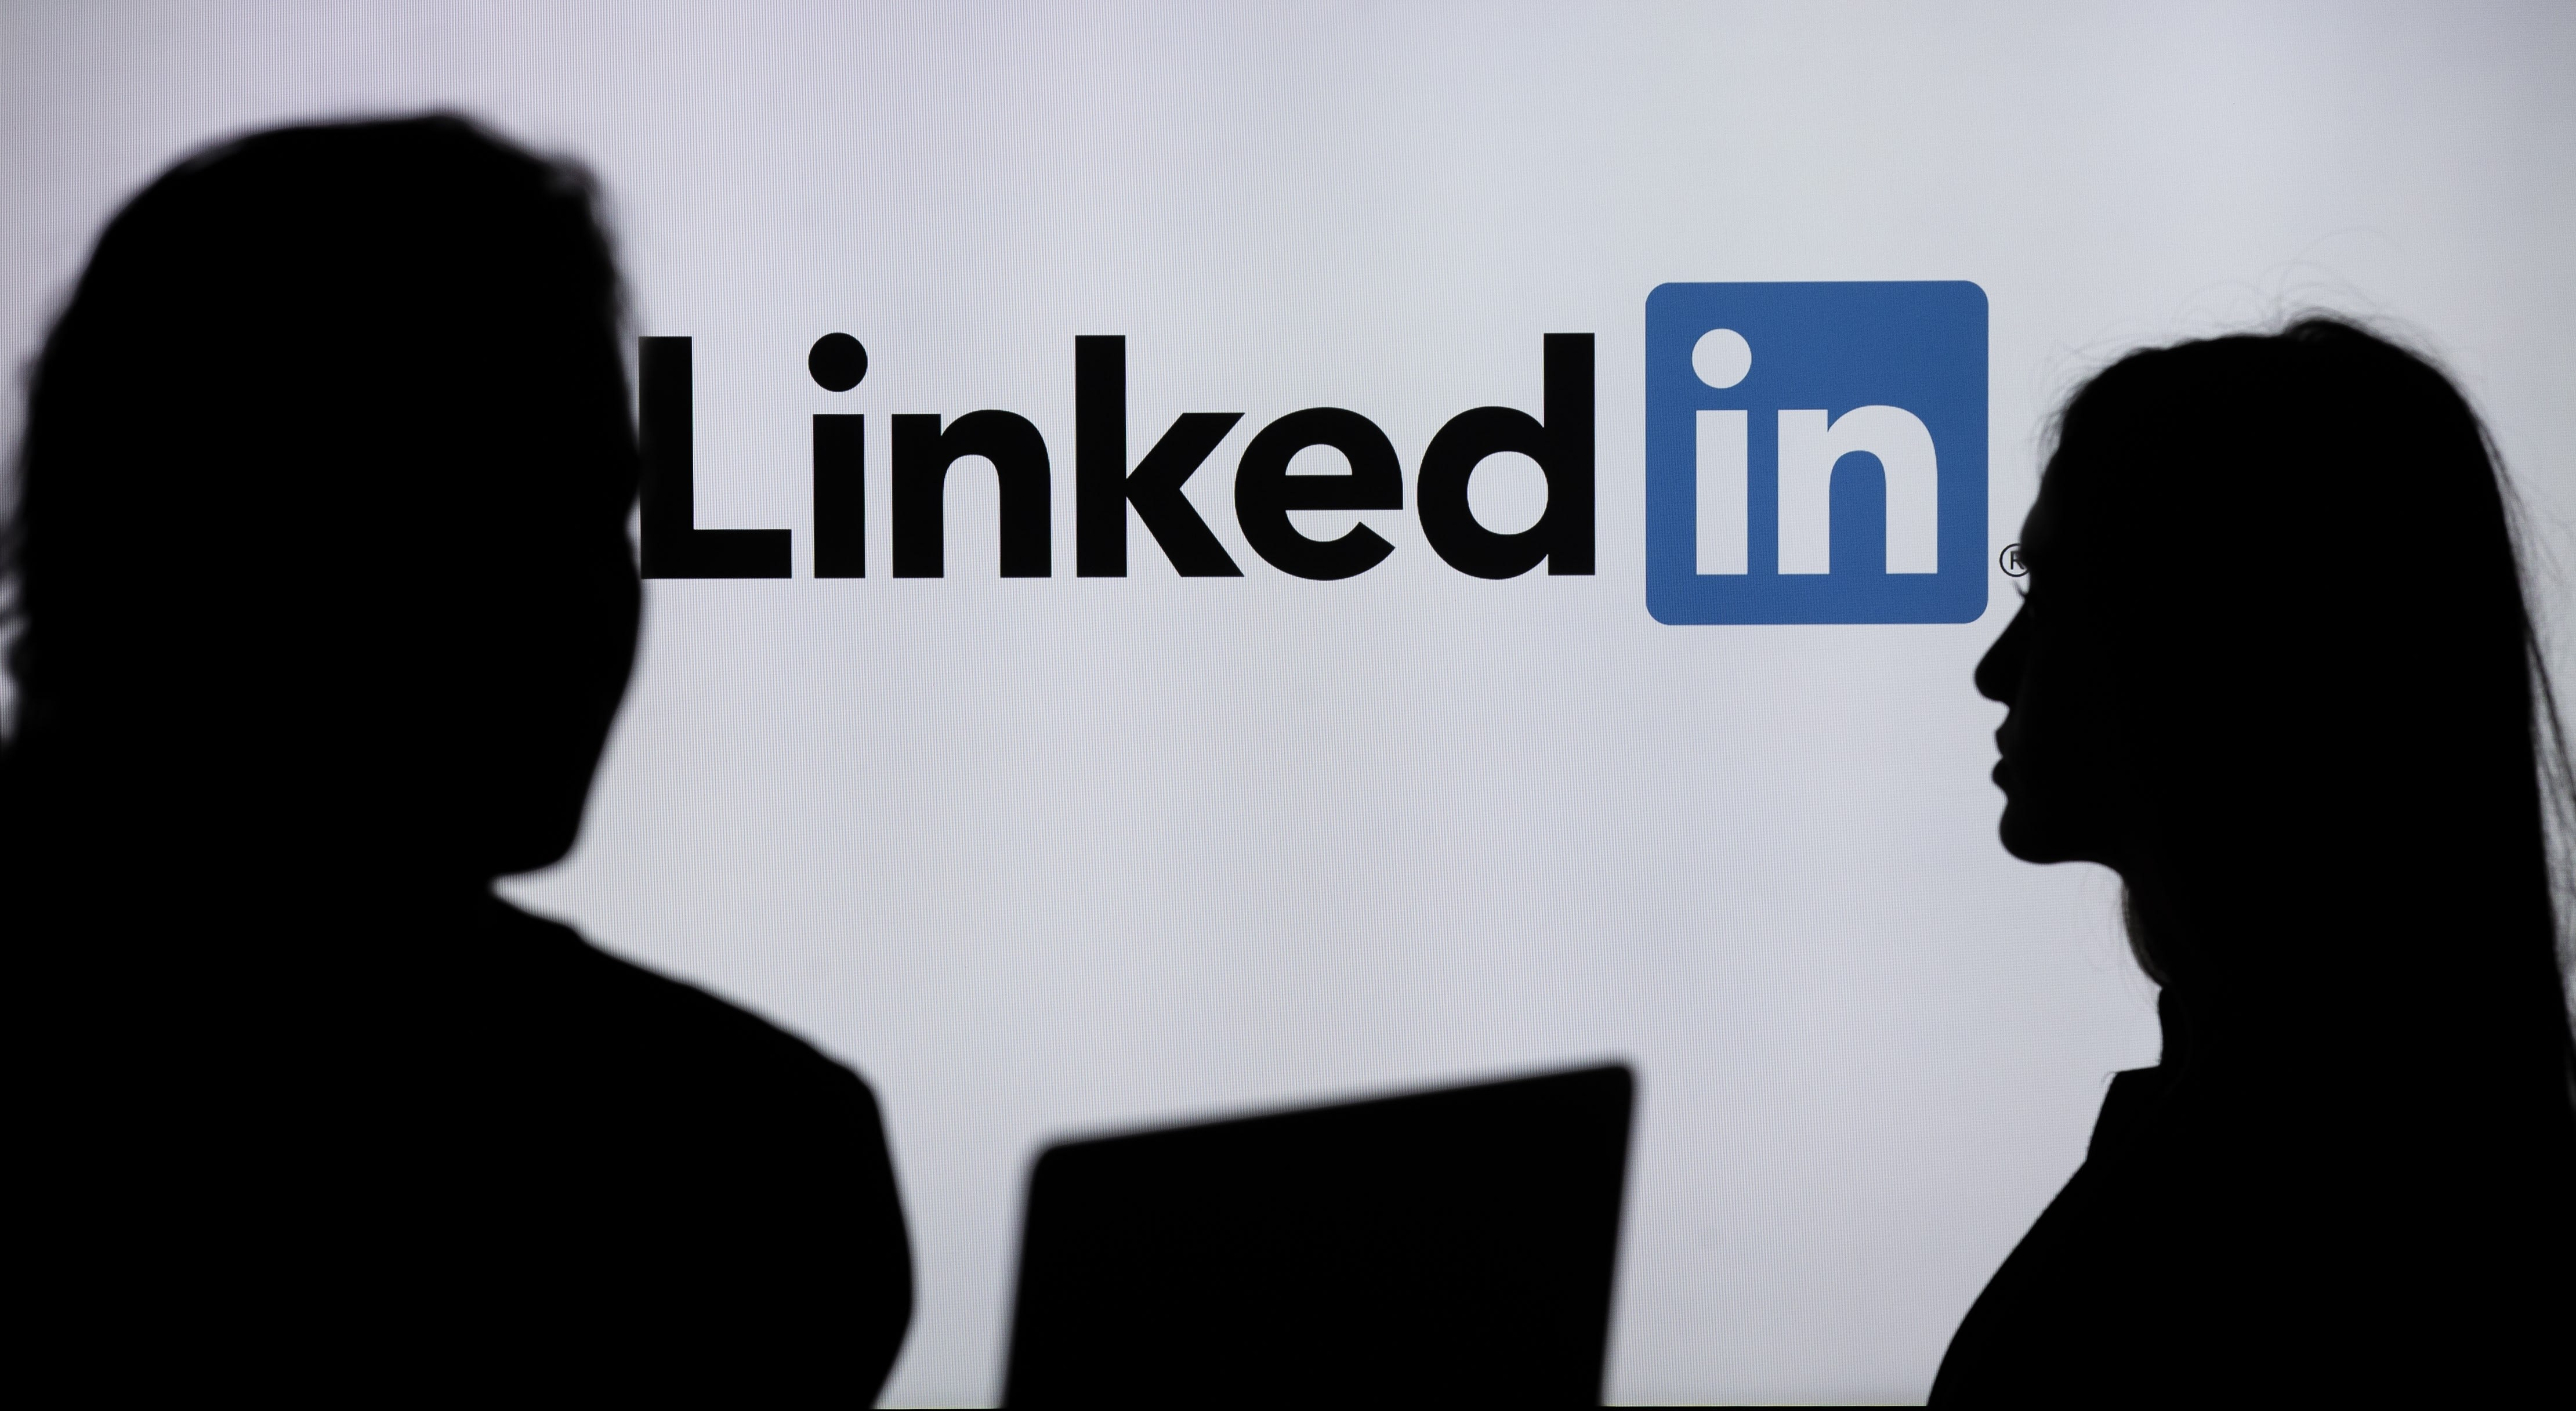 China is reportedly using LinkedIn to recruit spies overseas